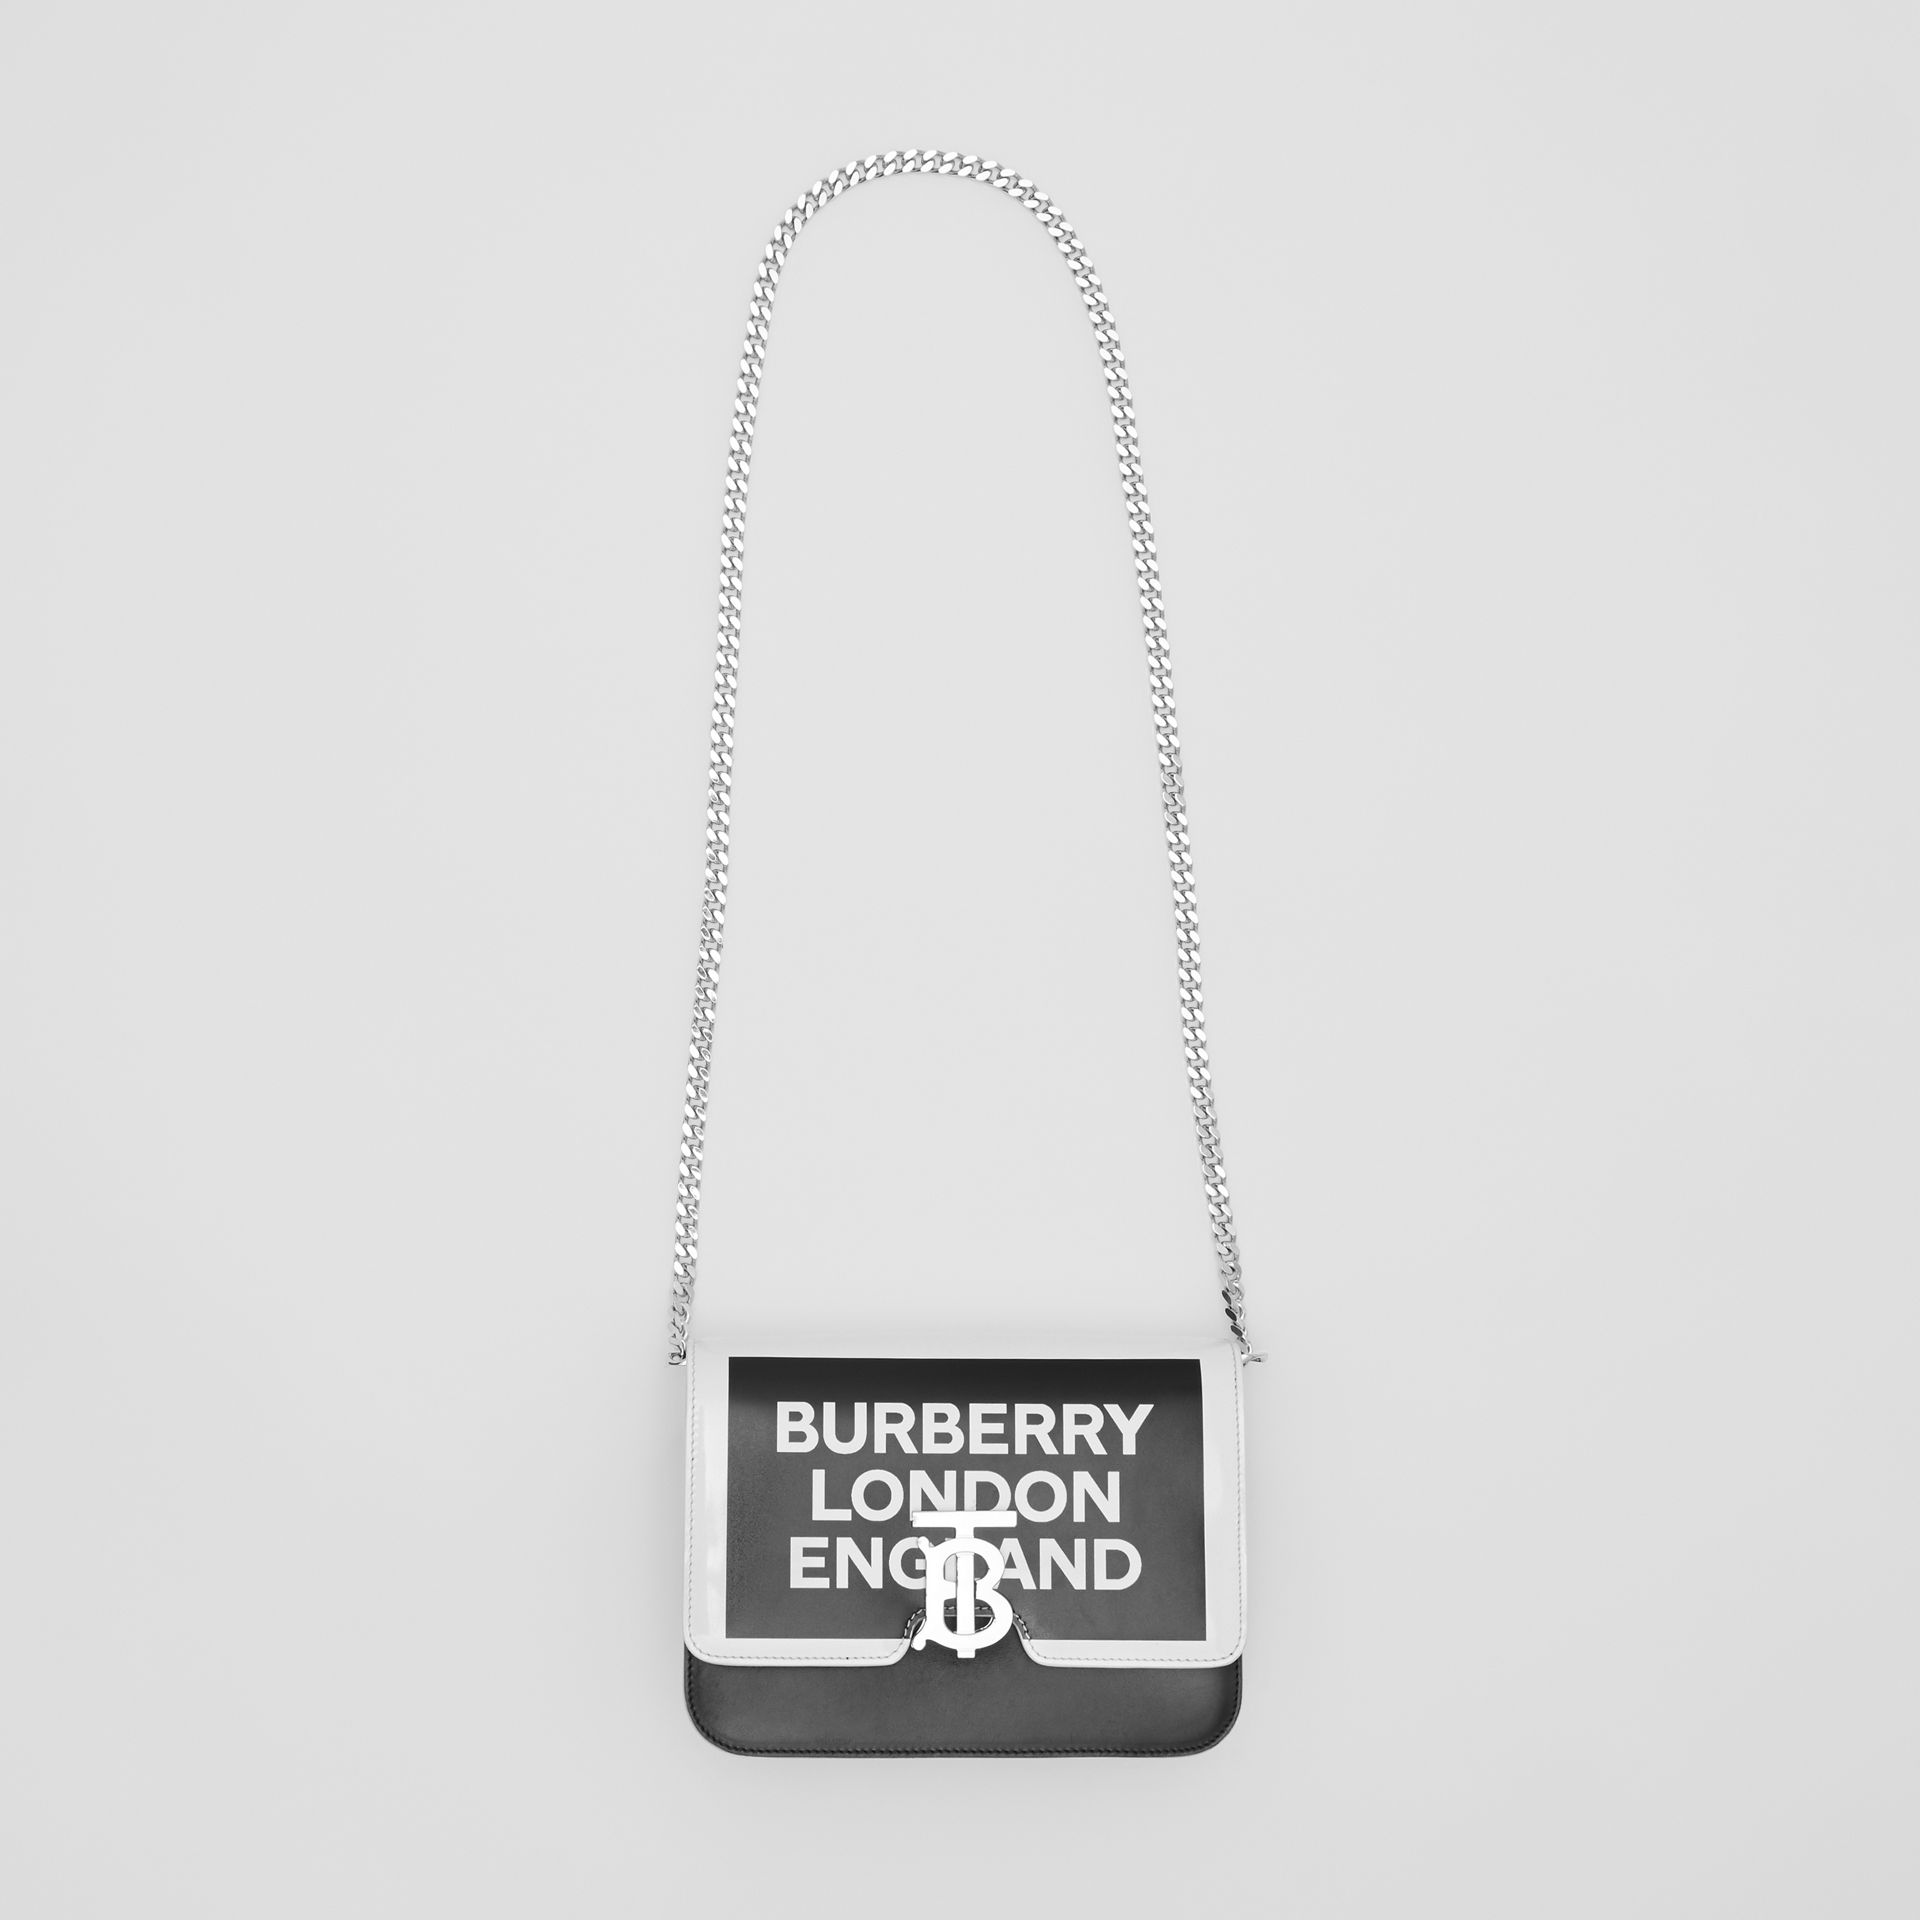 Small Logo Print Leather TB Bag in Black/white - Women | Burberry United Kingdom - gallery image 3